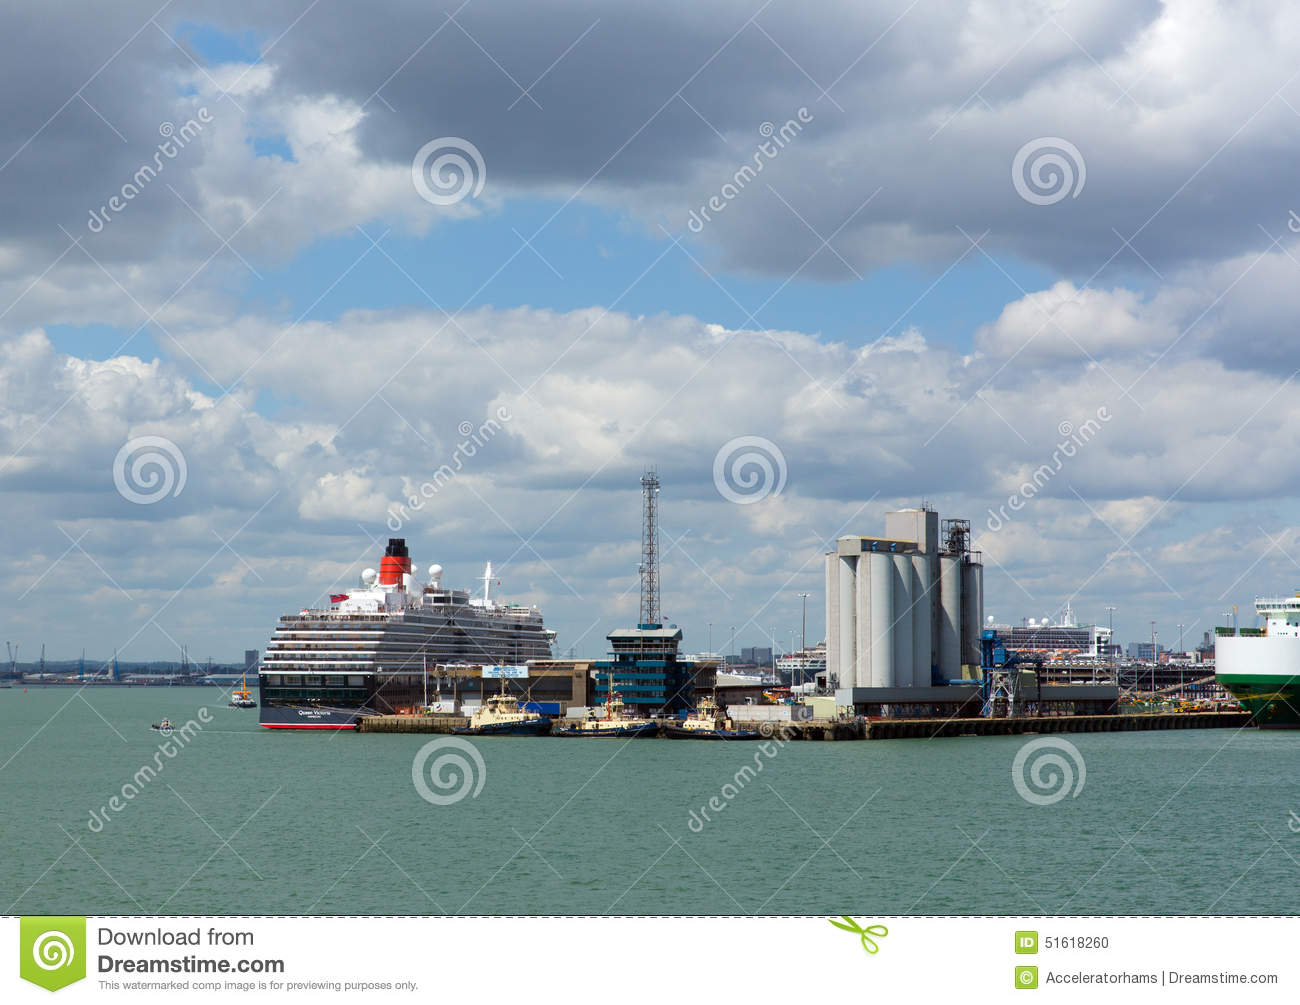 Southampton Docks With Big Cruise Ship And Cargo Vessel On Calm Summer Day With Fine Weather